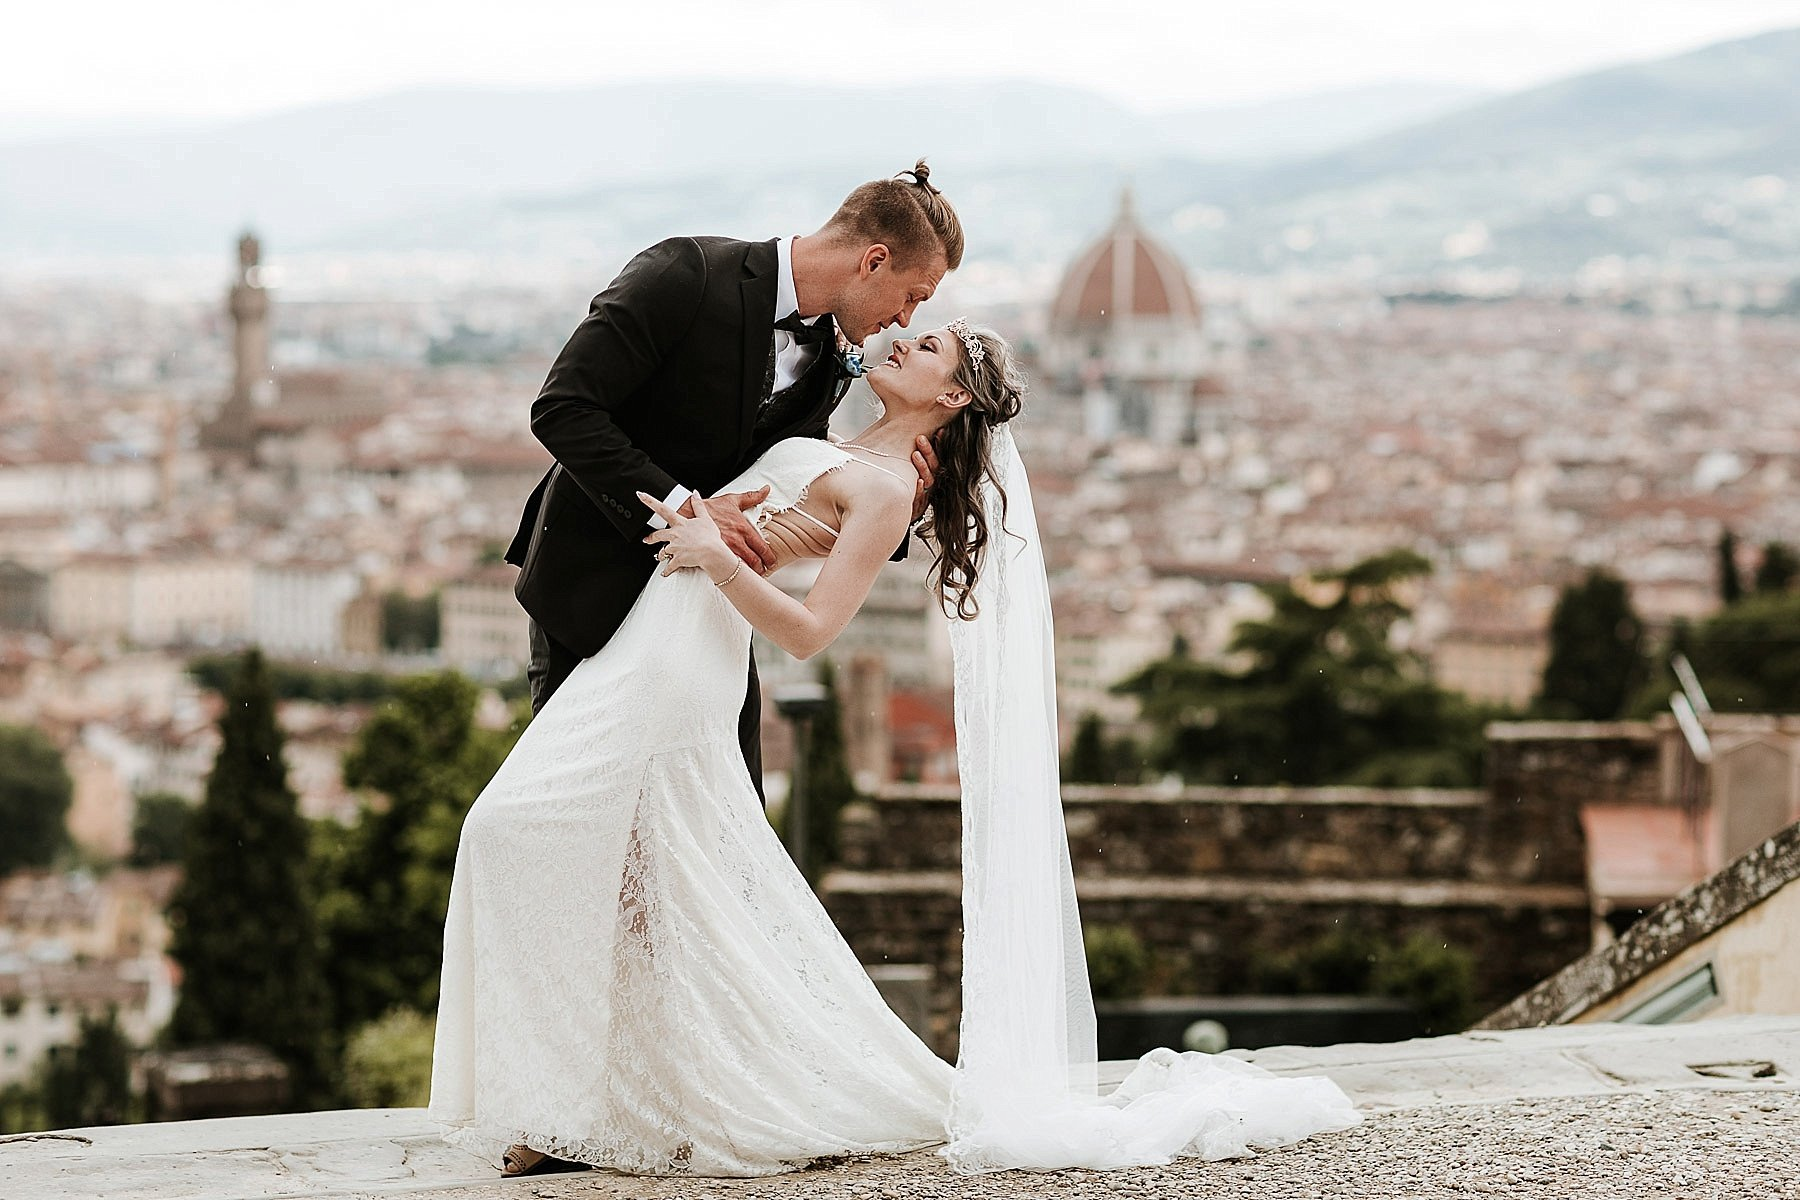 Bride and Groom picture in a fabulous scenario